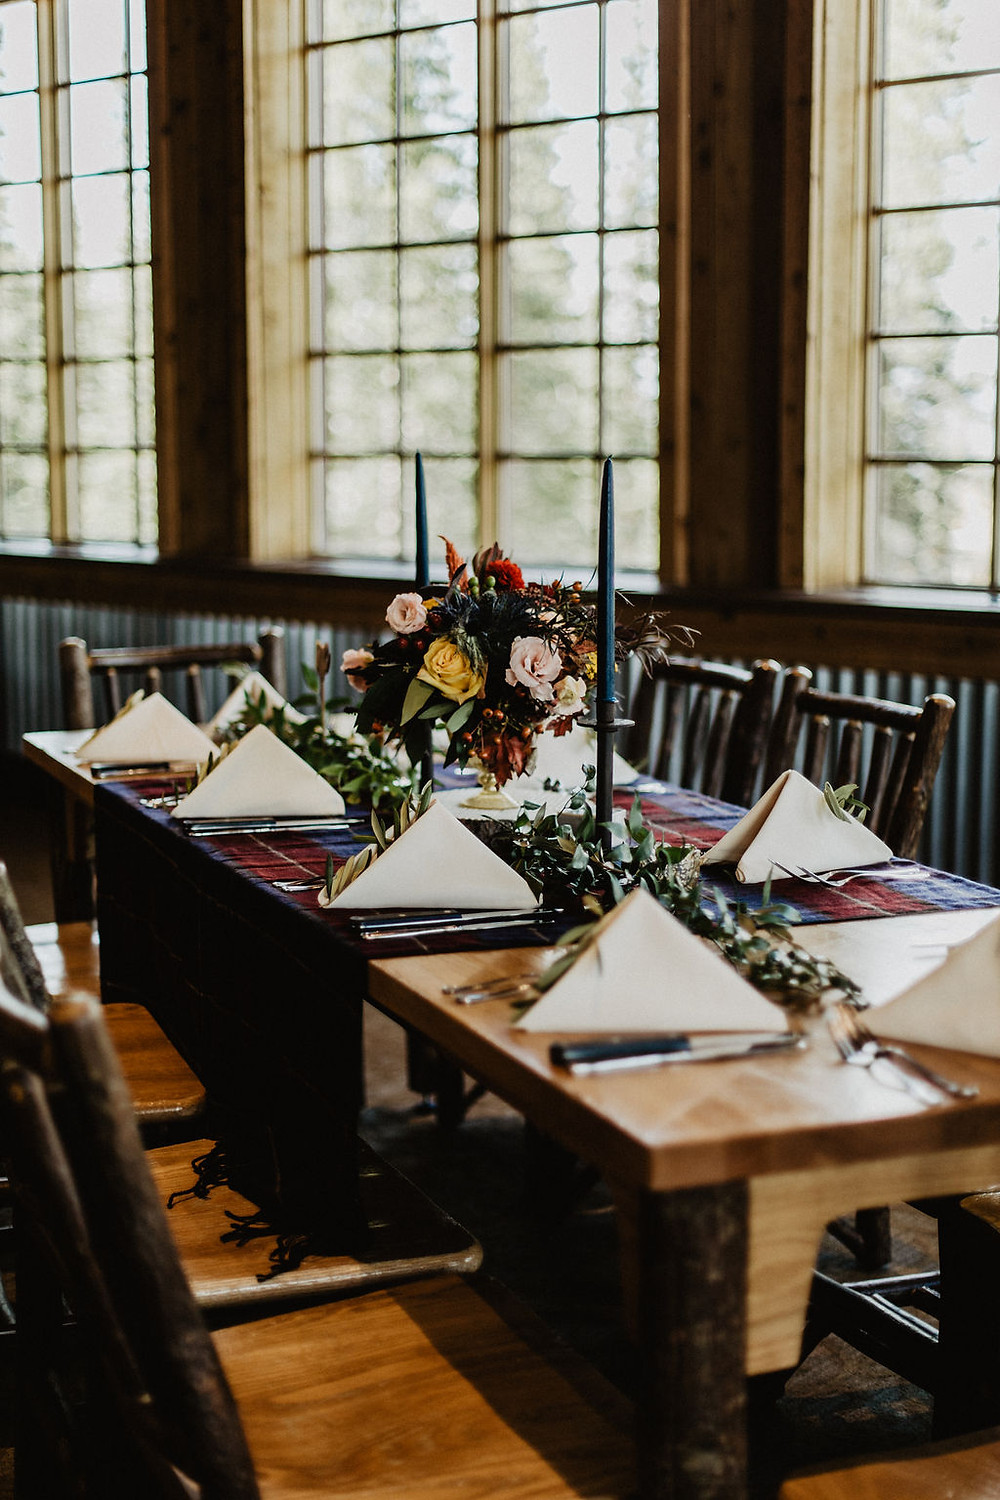 Ten Mile Station Wedding - Breckenride Wedding - Centerpiece